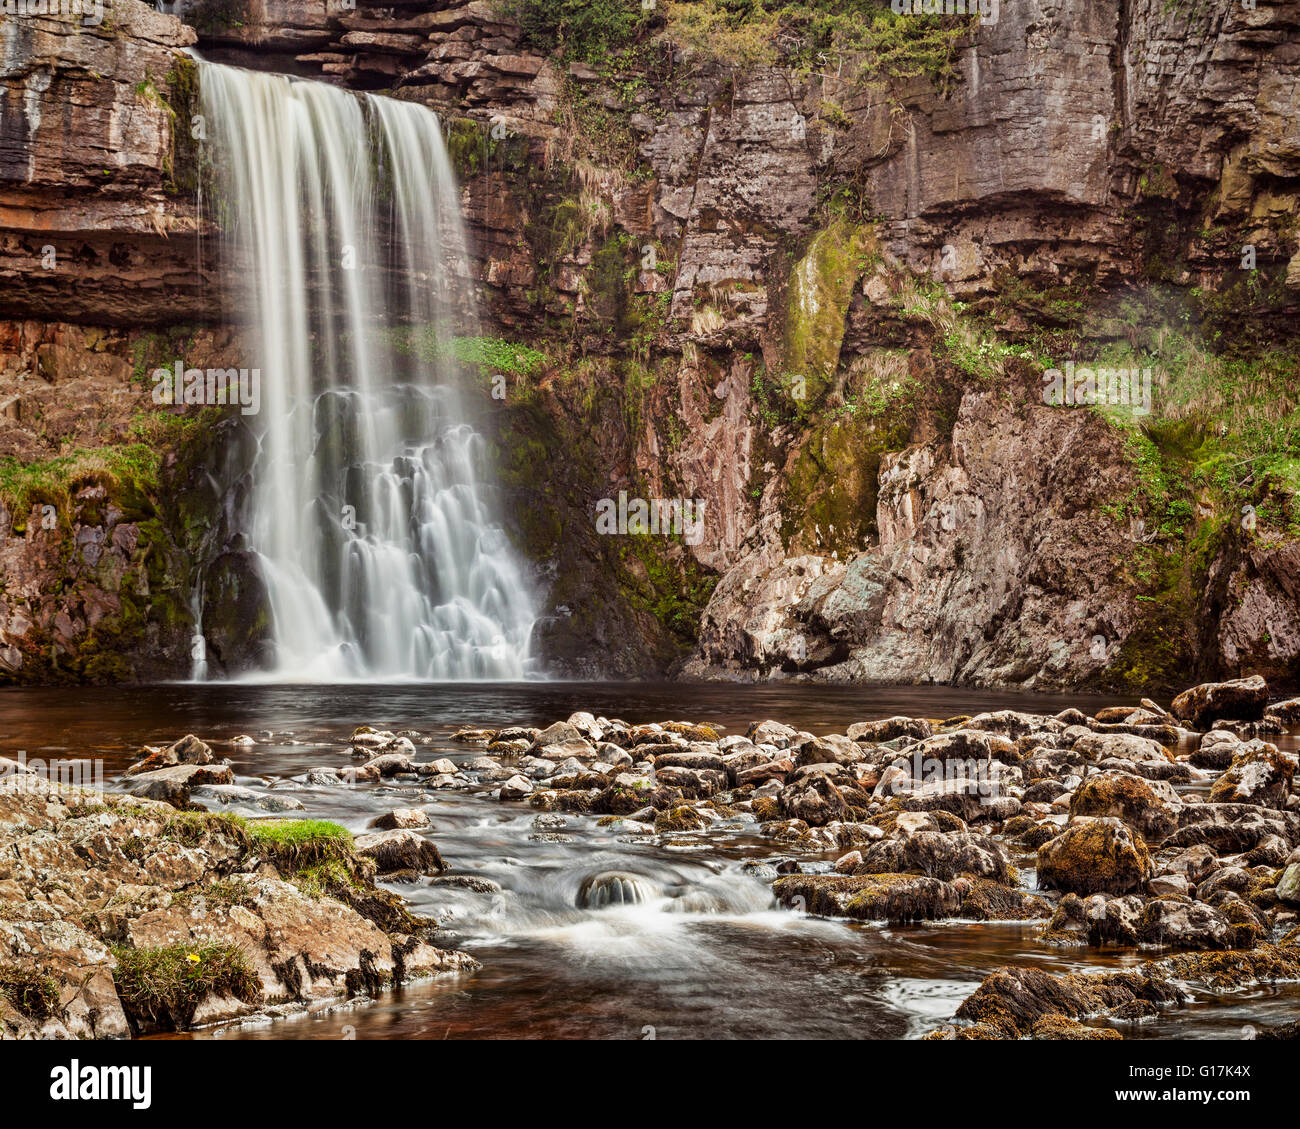 Thornton Force, a waterfall on the Ingleton Waterfall Trail, Yorkshire Dales National Park, North Yorkshire, England, - Stock Image